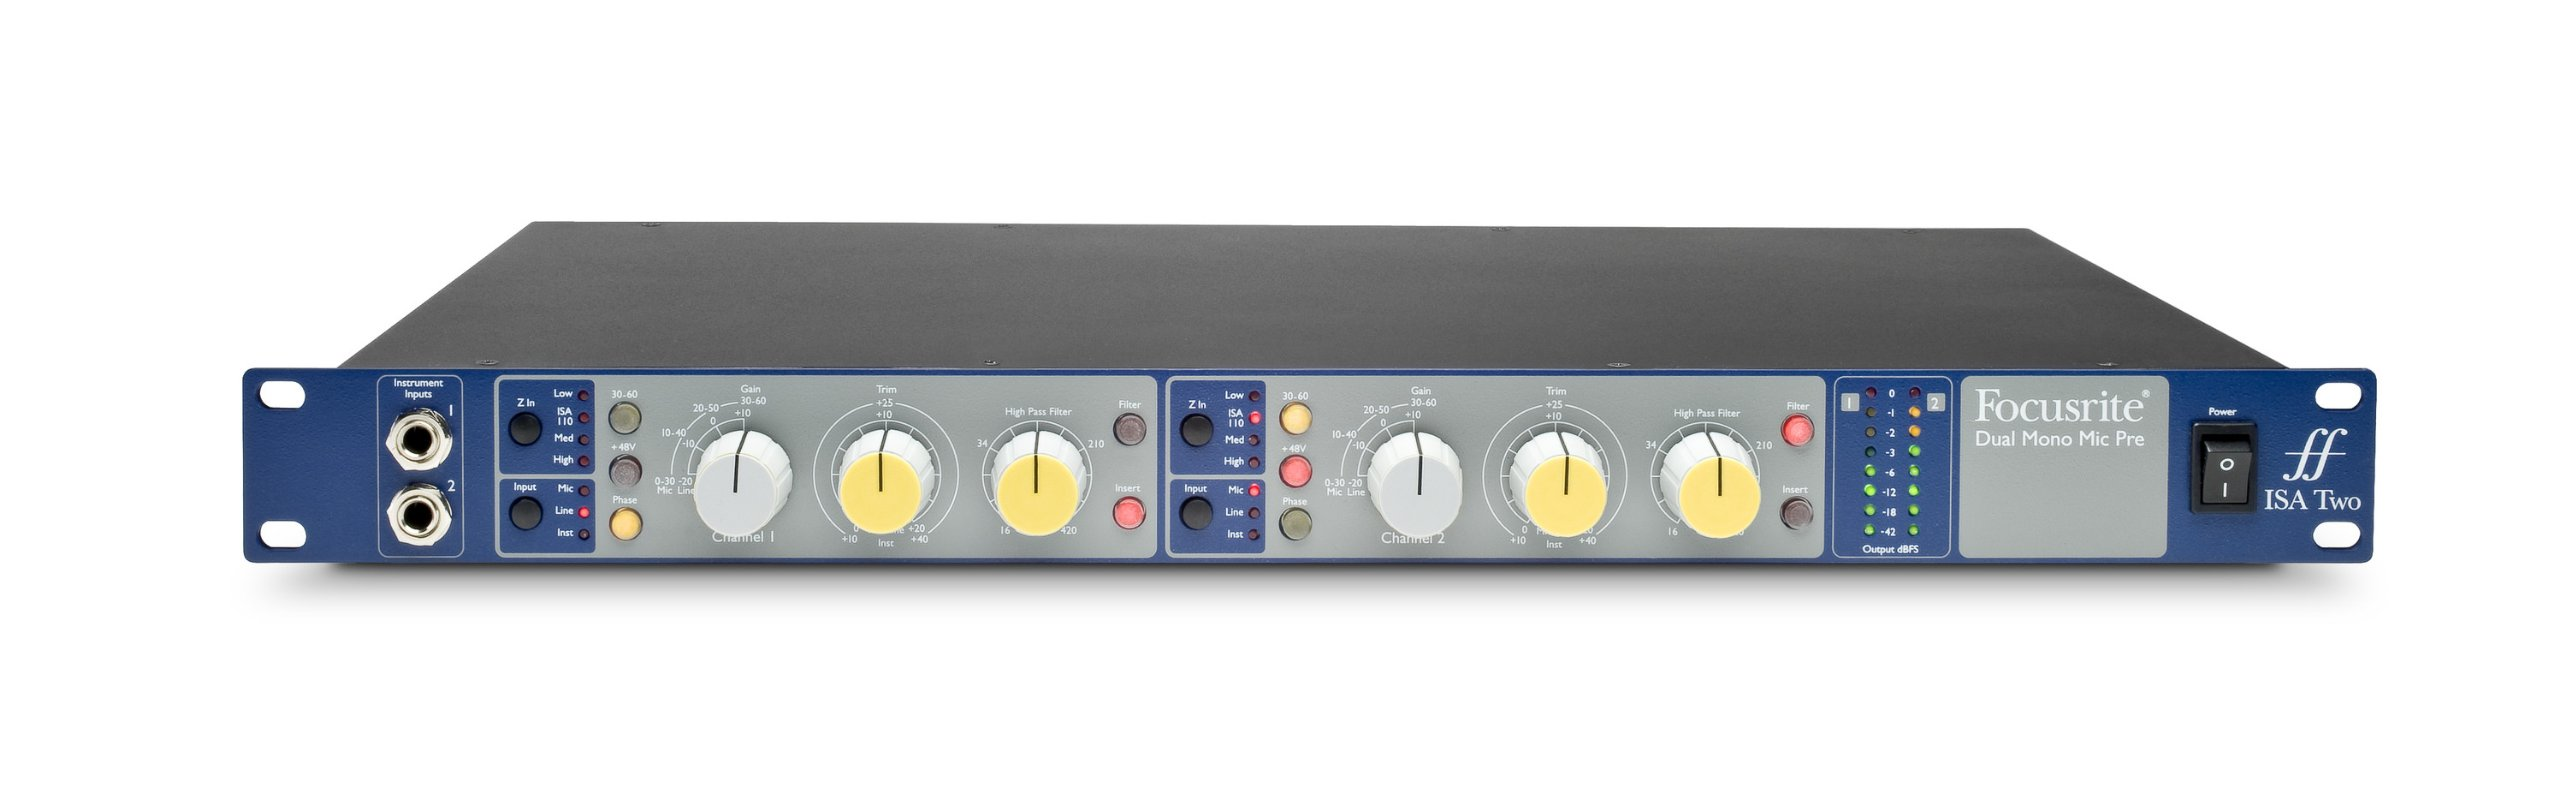 Focusrite ISA Two Focusrite ISA Two Classic Dual Mono Transformer-Based Microphone Preamplifier by Focusrite